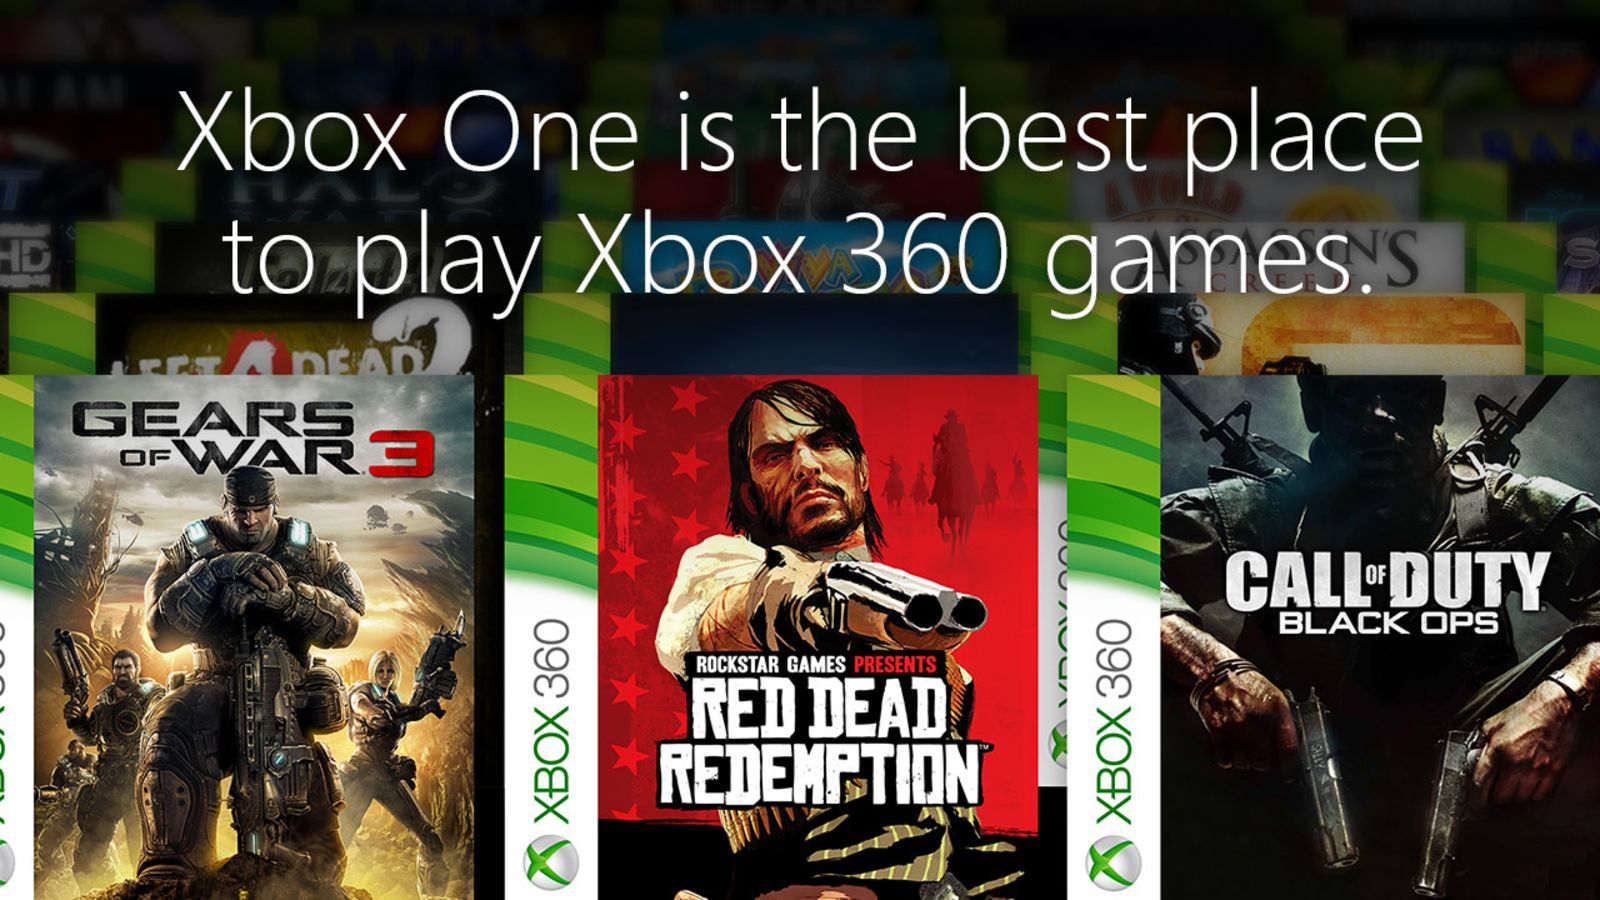 All Xbox 360 backward compatible games on Xbox One